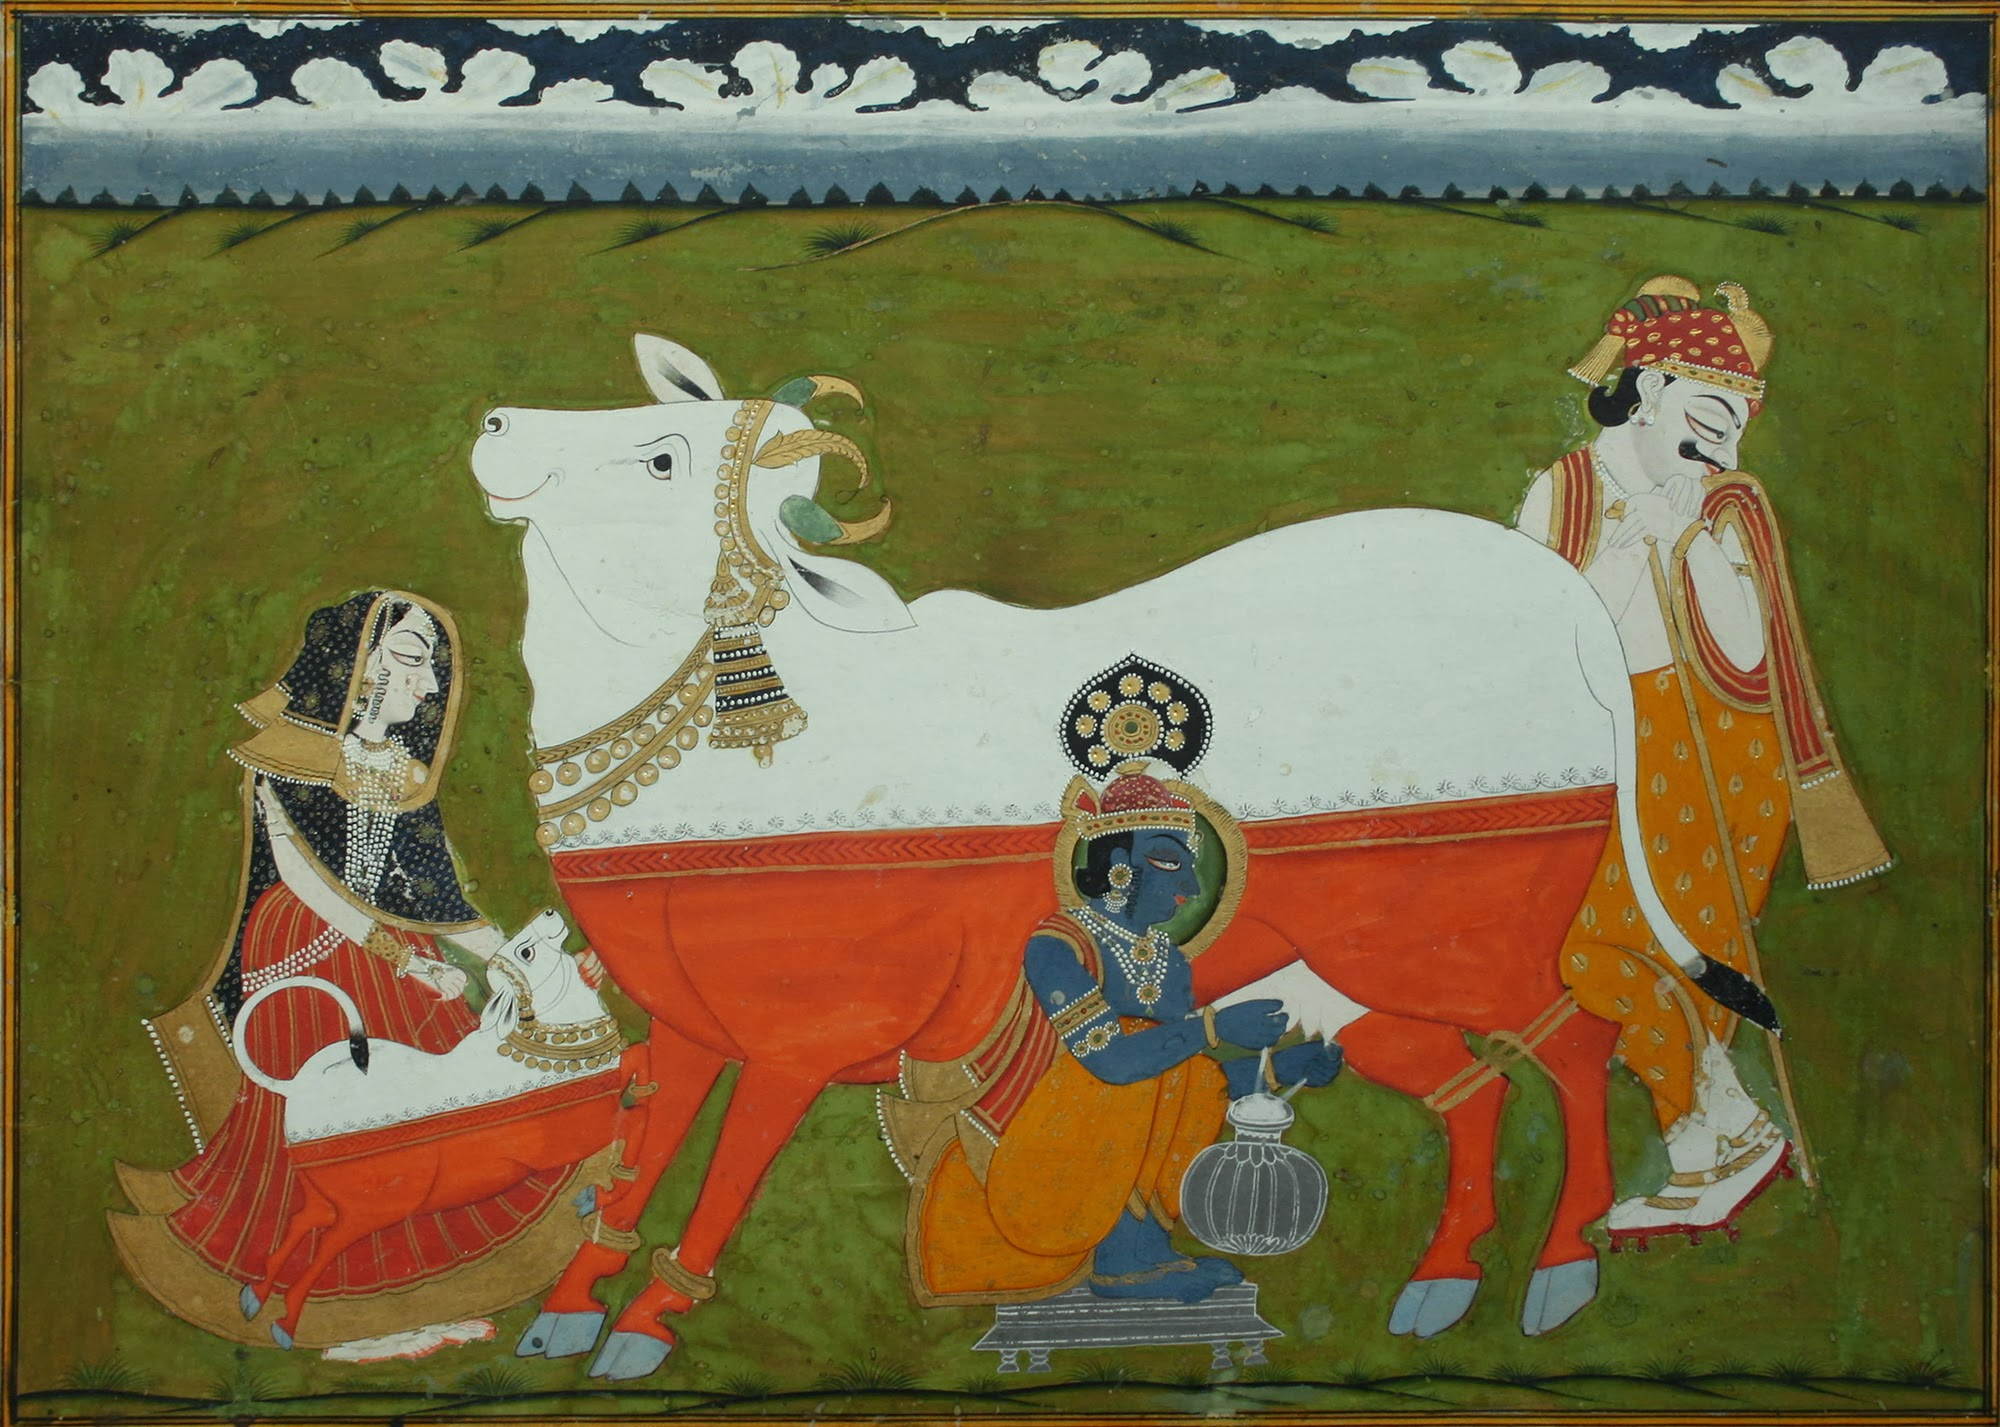 Krishna milking Cow, accompanied by parents Yashoda and Nanda - Marwar, c.1840-60